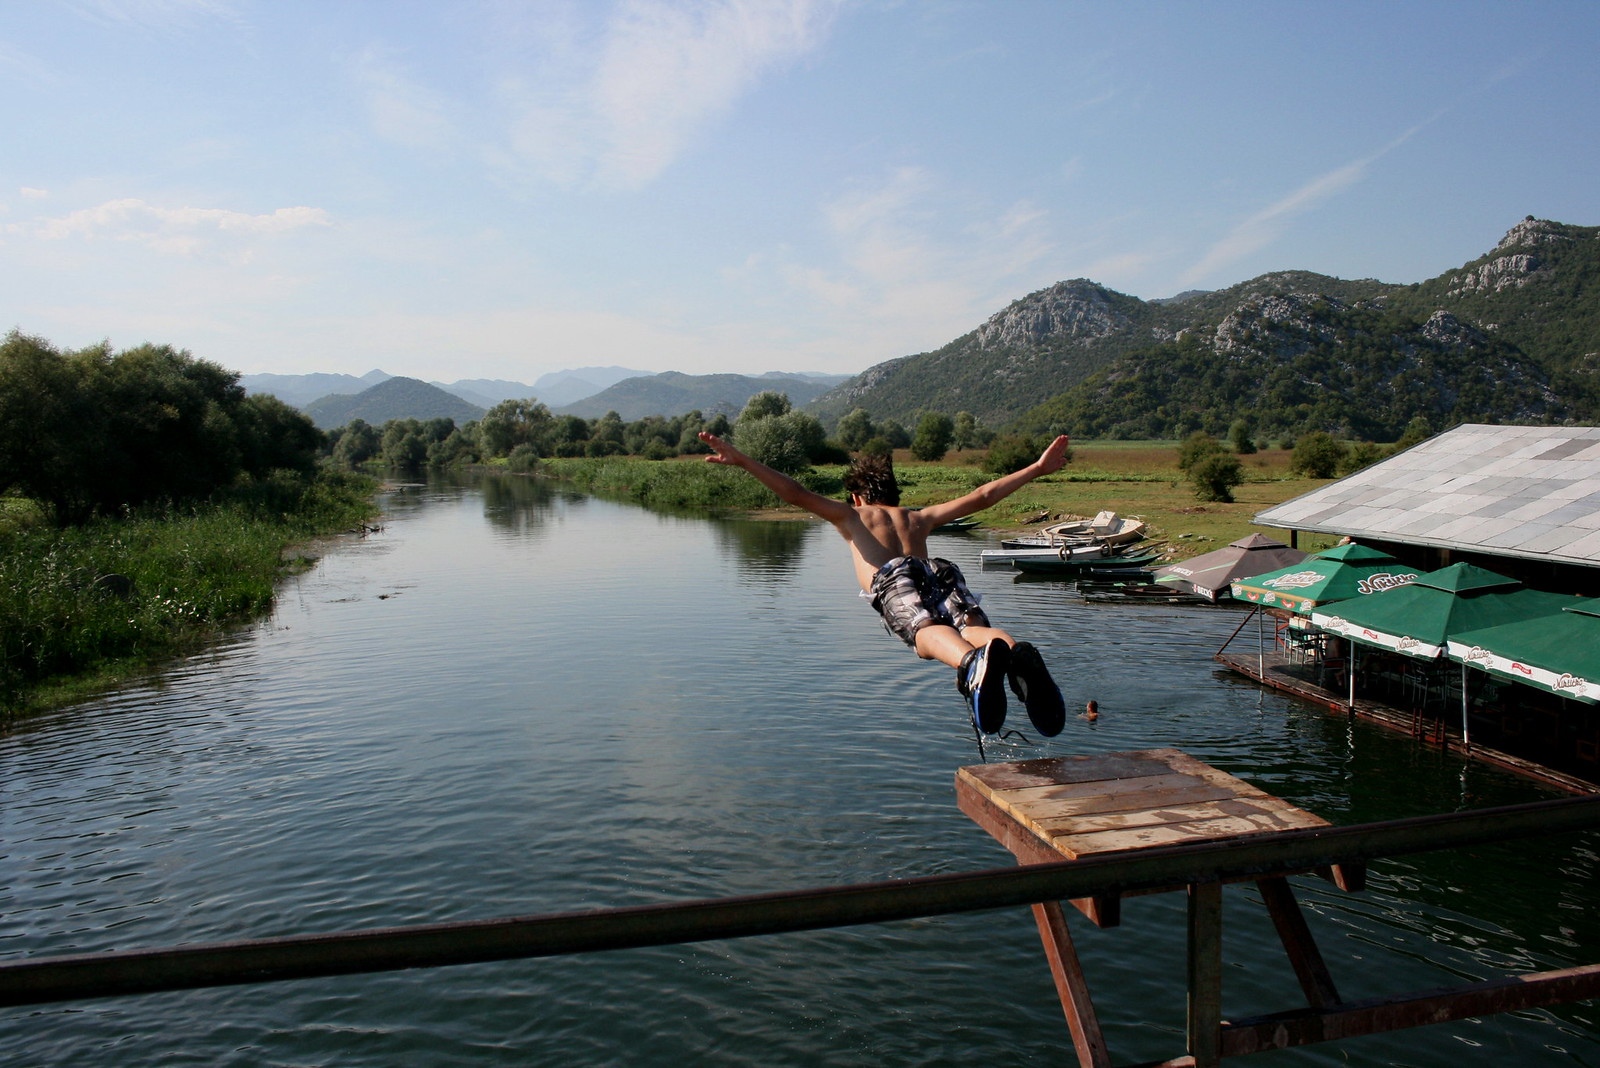 Swallow dive into River Karatuna | by Undiscovered Montenegro